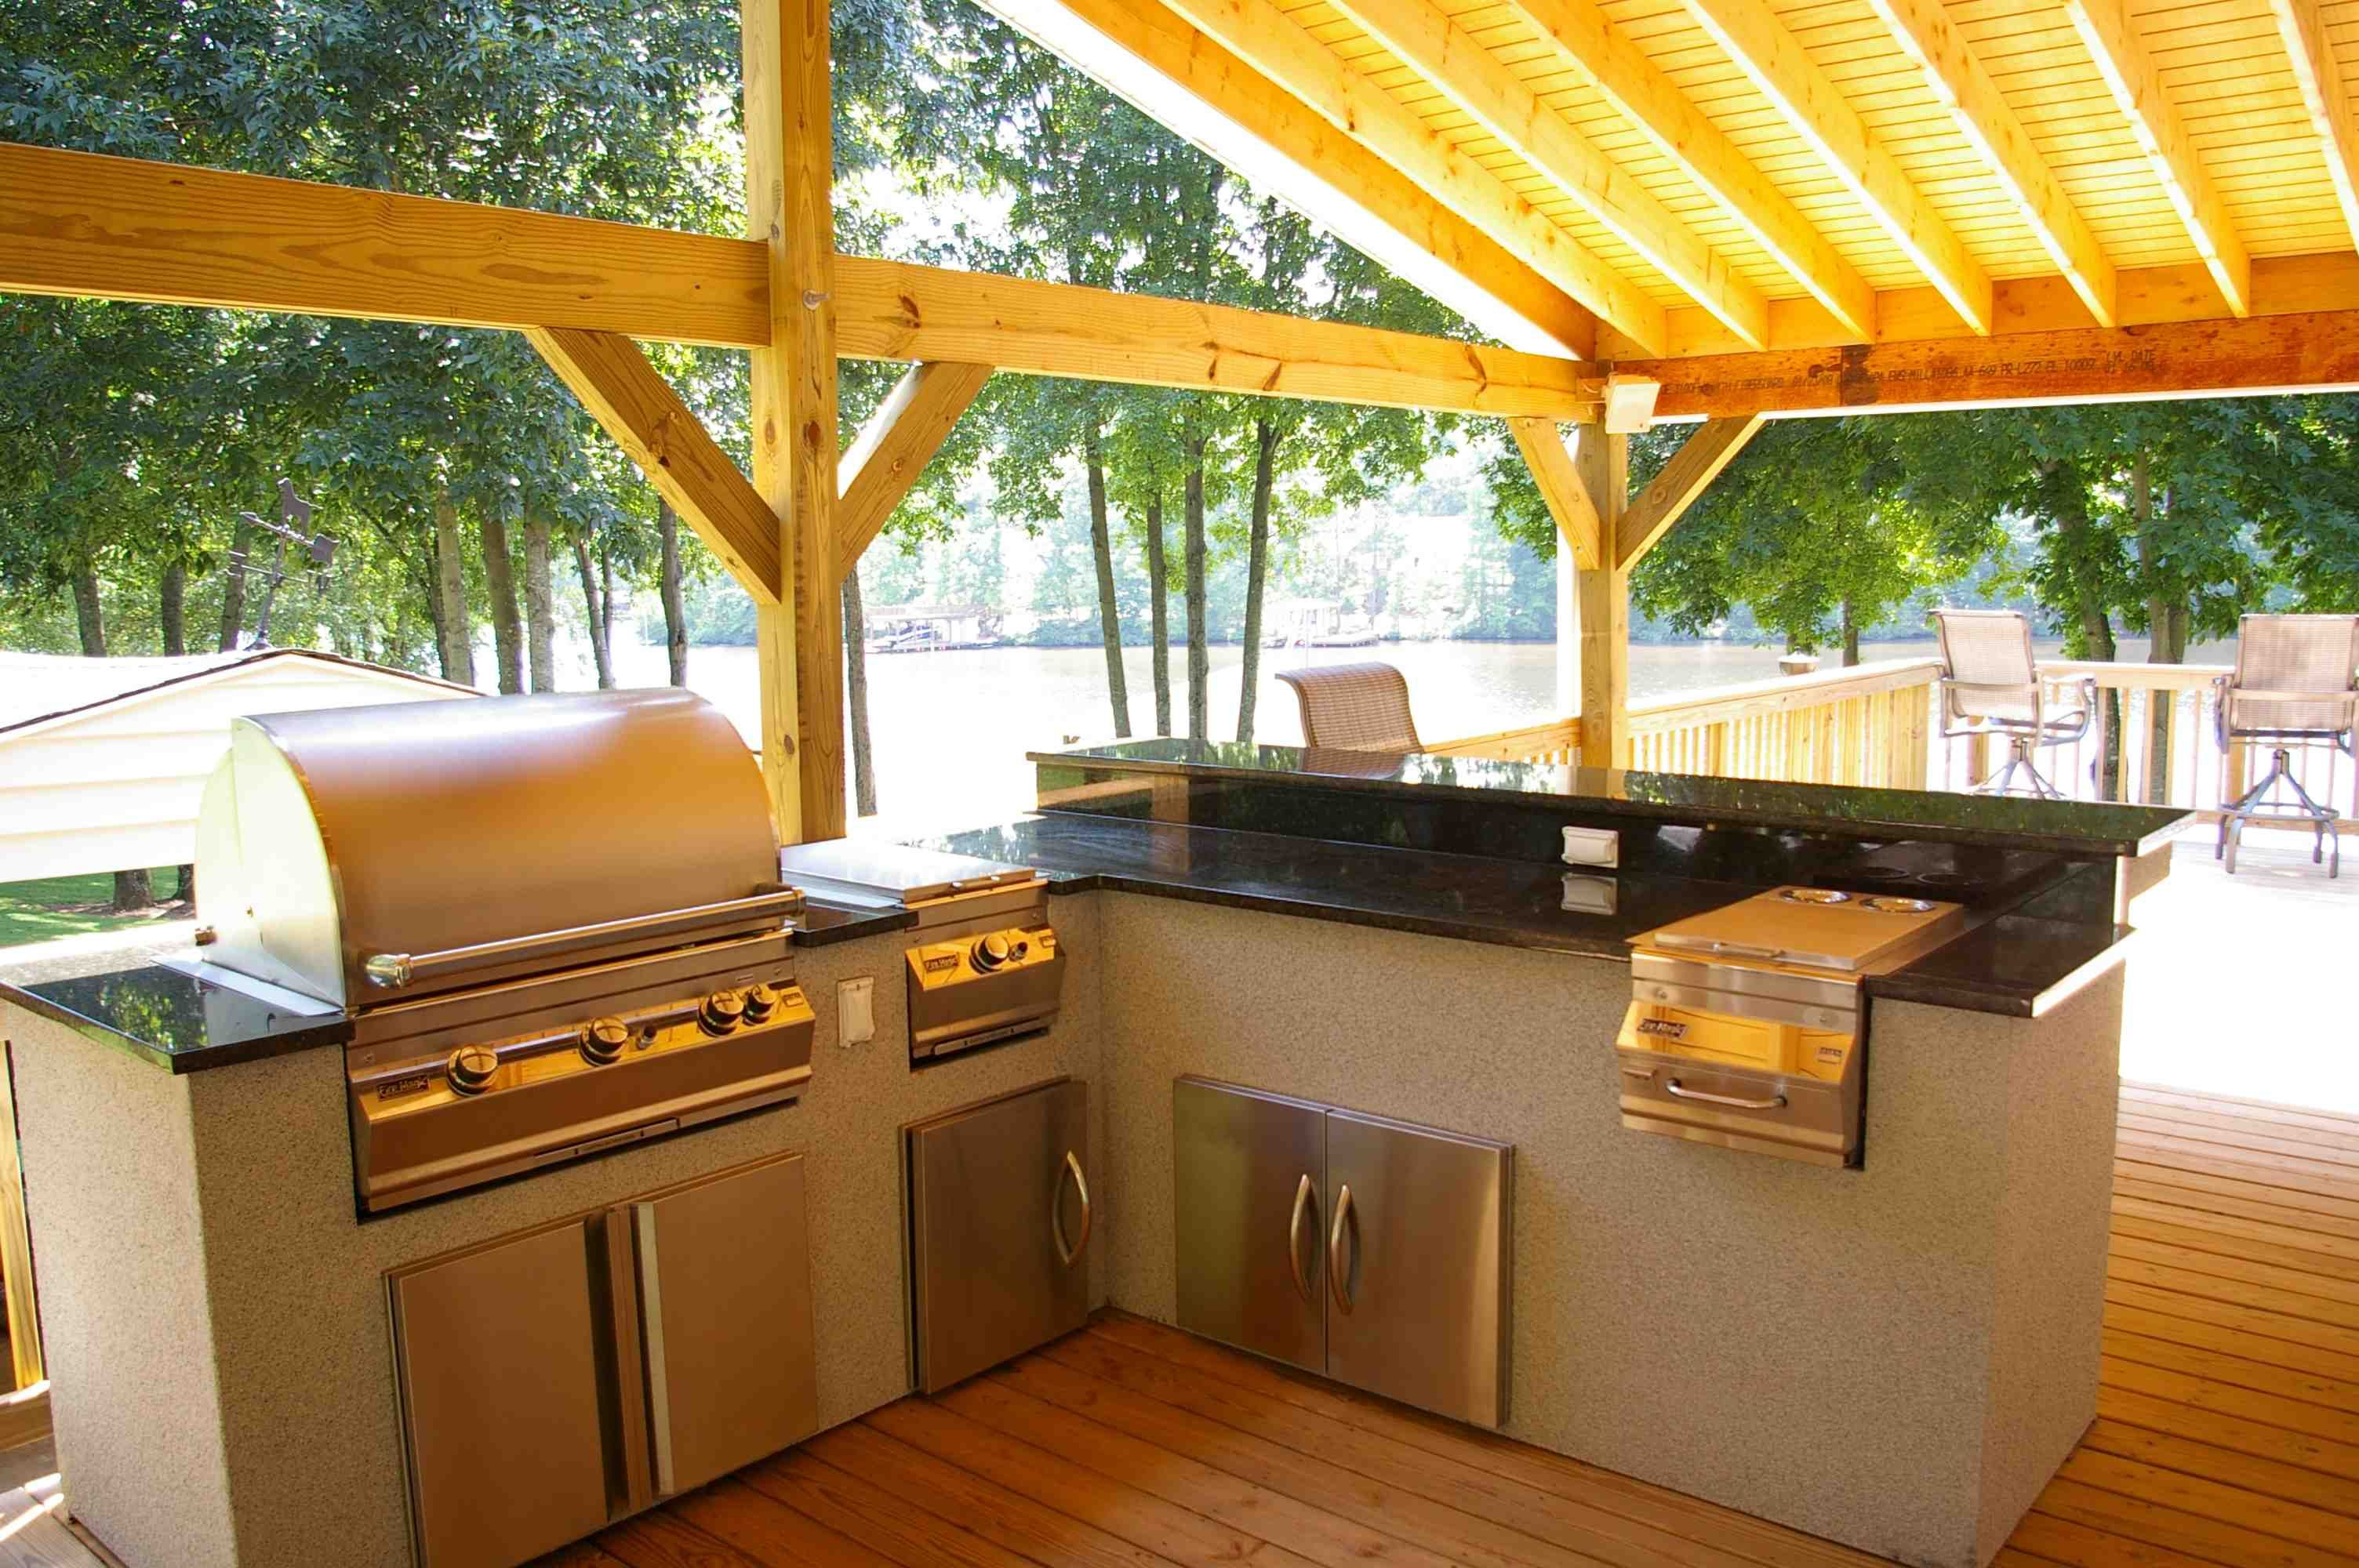 Awesome Best Outdoor Kitchen Ideas On A Budget Covered Outdoor Kitchens Backyard Kitchen Outdoor Kitchen Design